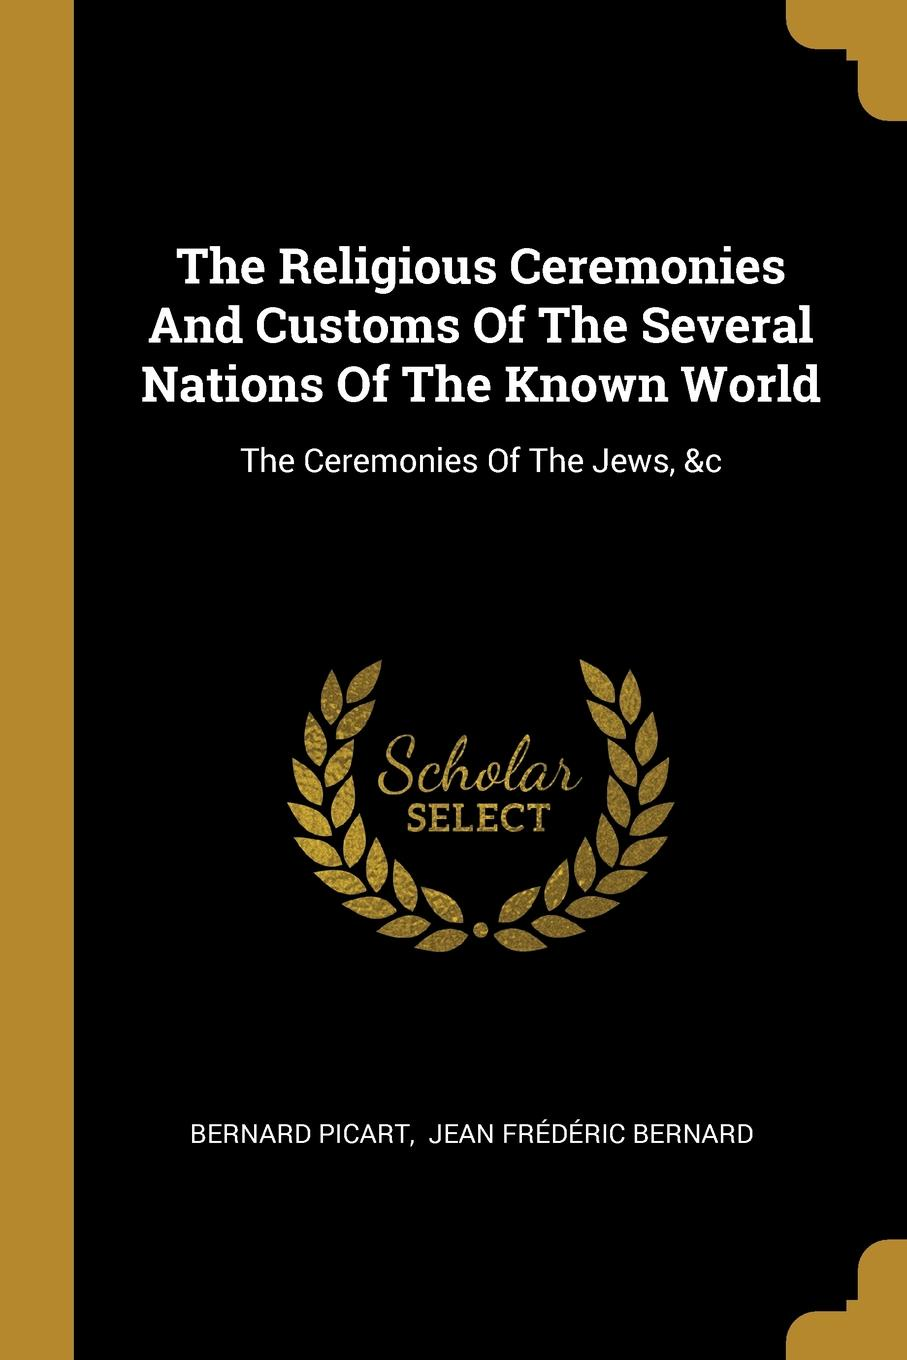 The Religious Ceremonies And Customs Of The Several Nations Of The Known World. The Ceremonies Of The Jews, .c